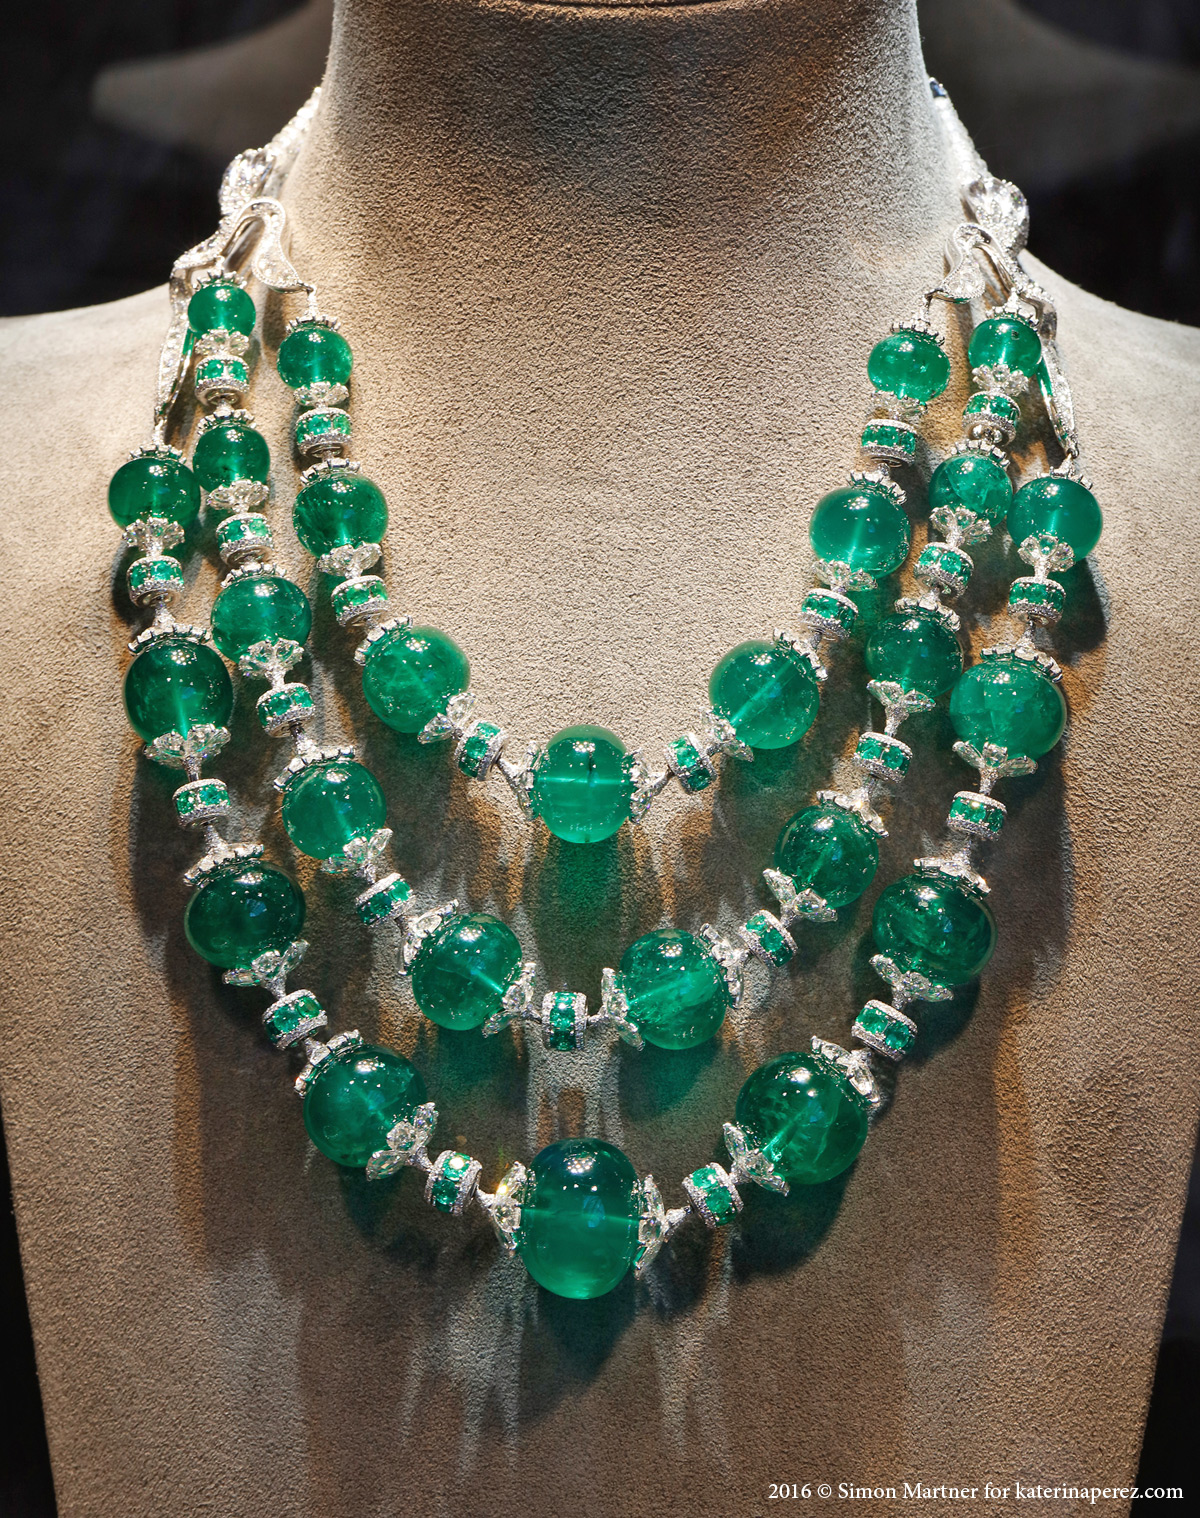 Nirav Modi Maharani emerald necklace with Colombian emeralds and diamonds